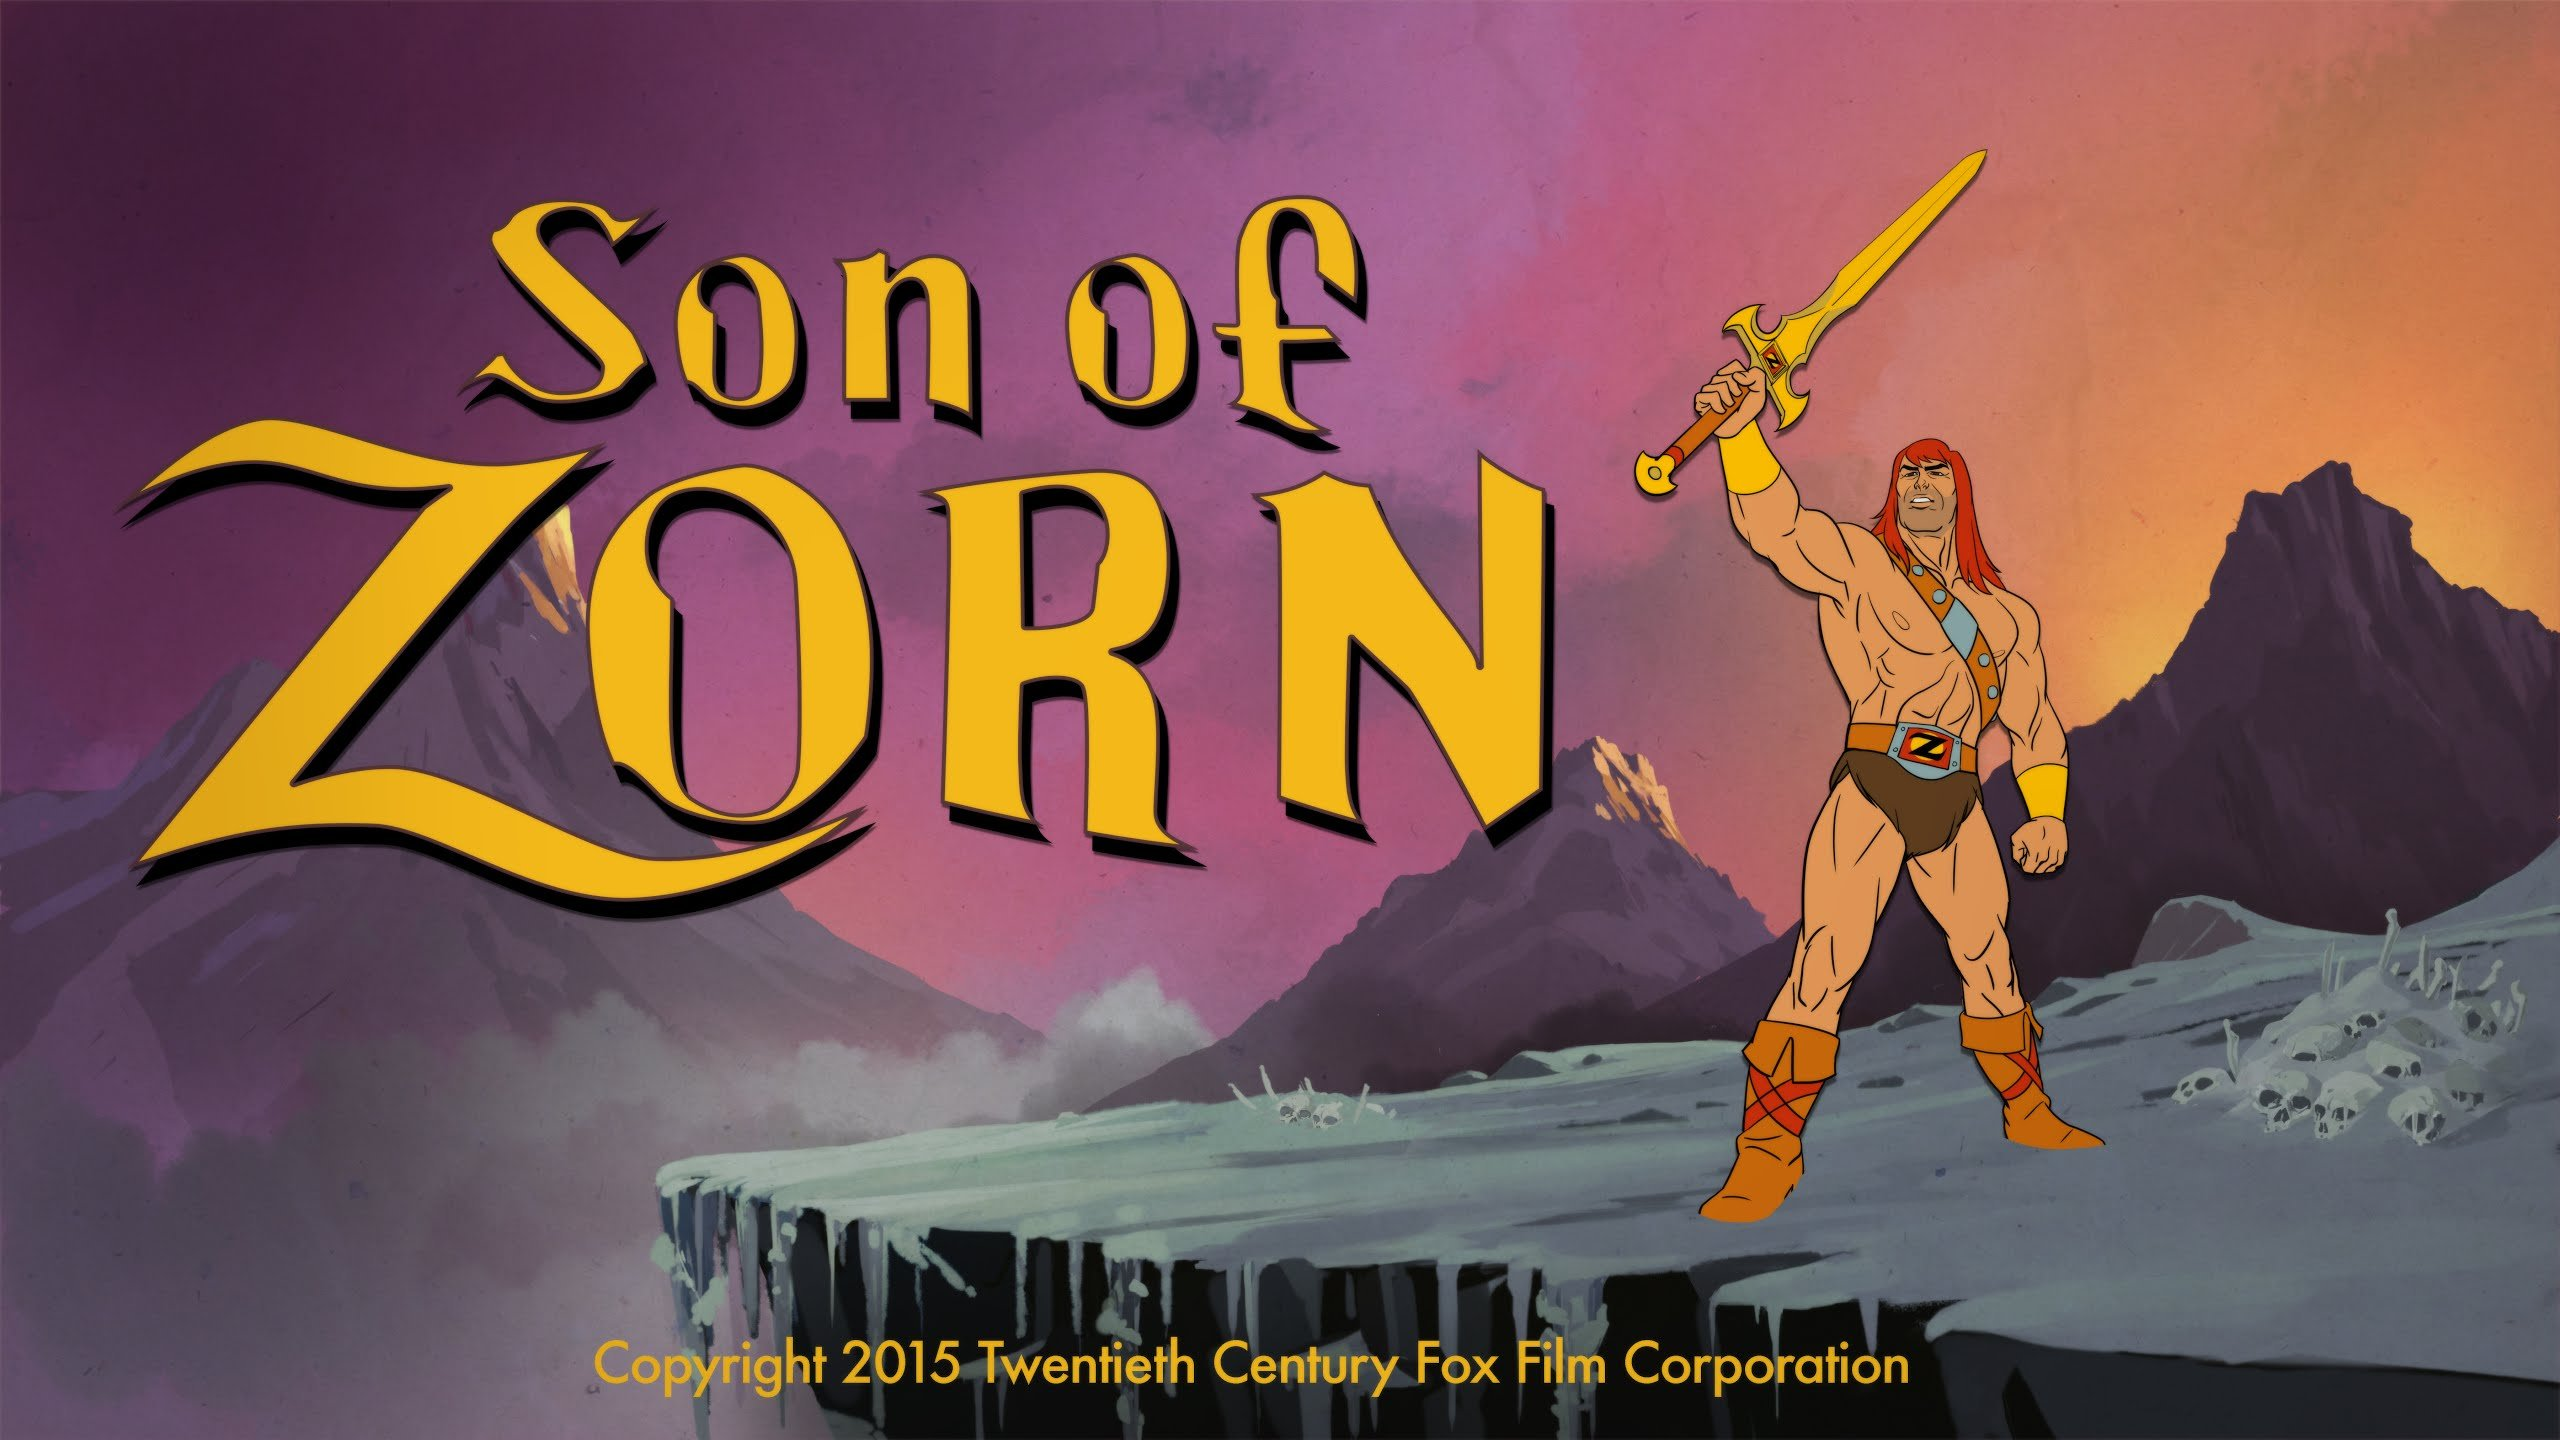 son-of-zorn-filming-locations-los-angeles